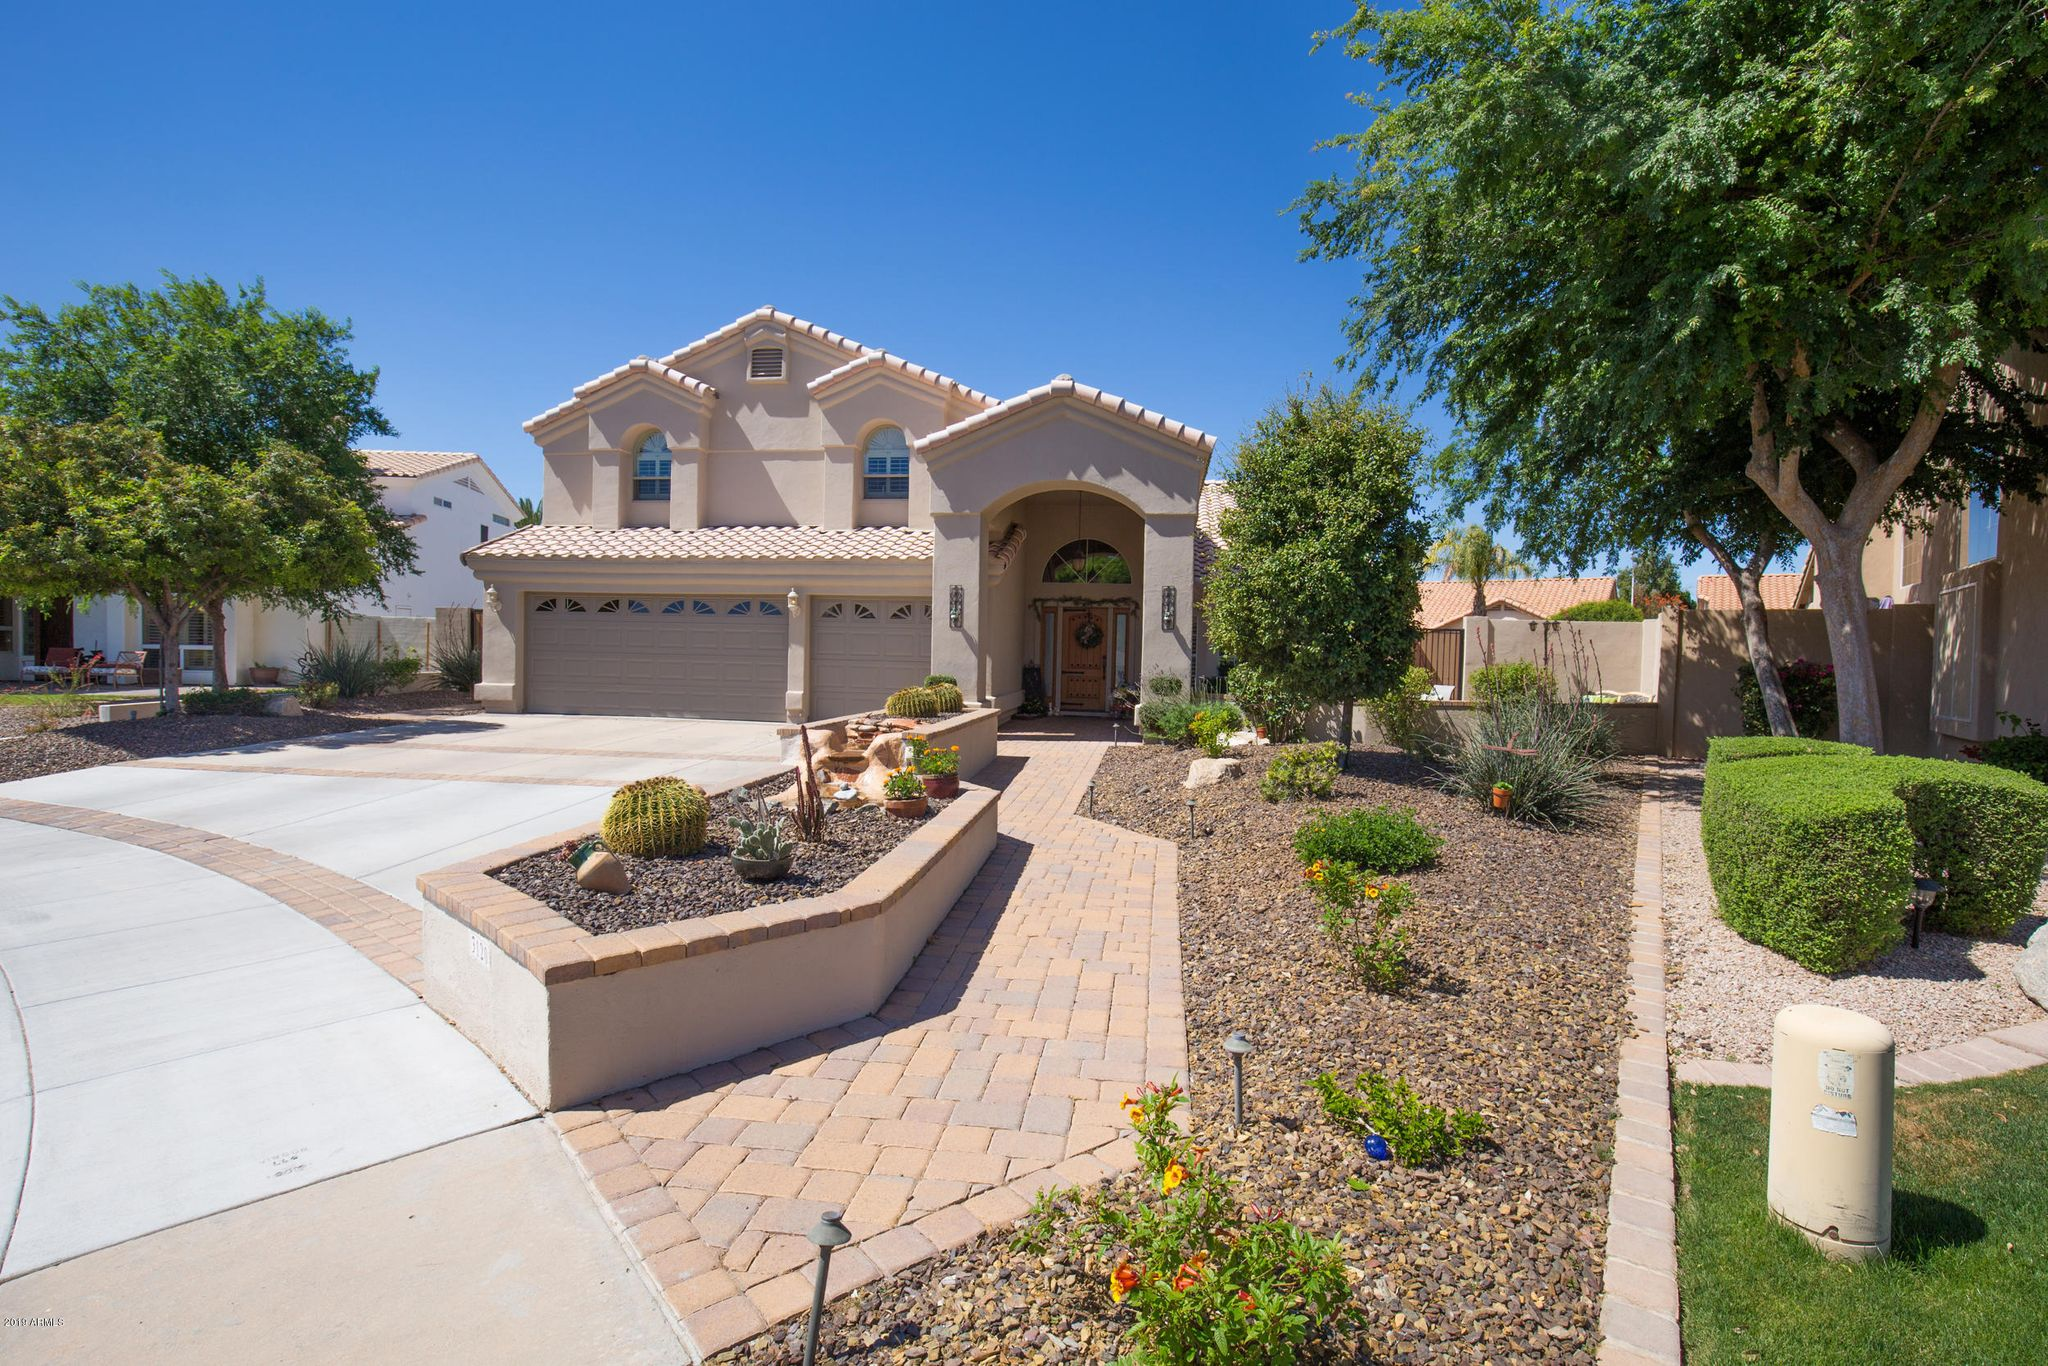 Fabulous 3120 W Ironwood Cir Chandler Az 85226 4 Bed 3 Bath Single Family Home Mls 5909990 45 Photos Trulia Download Free Architecture Designs Scobabritishbridgeorg